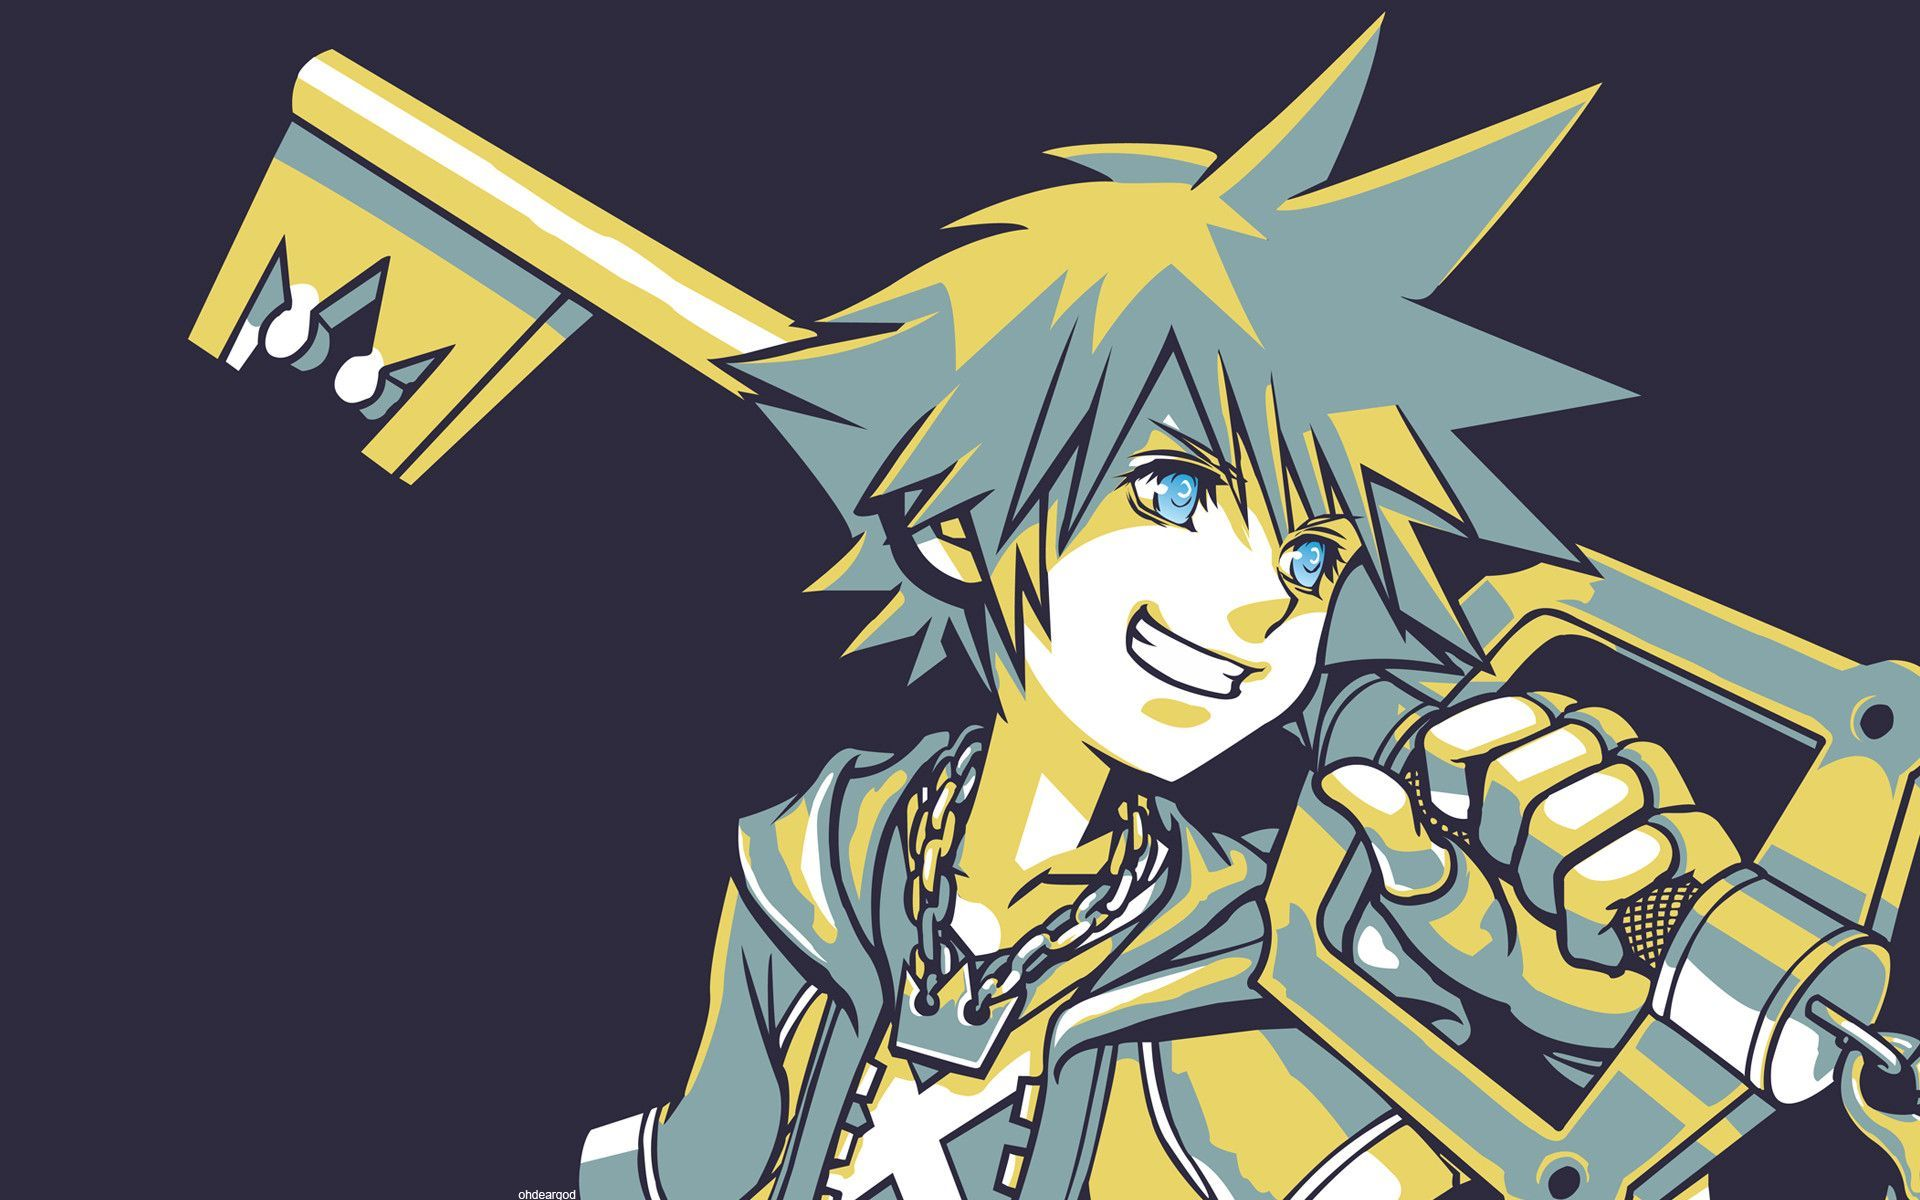 Kingdom Hearts Sora Wallpaper